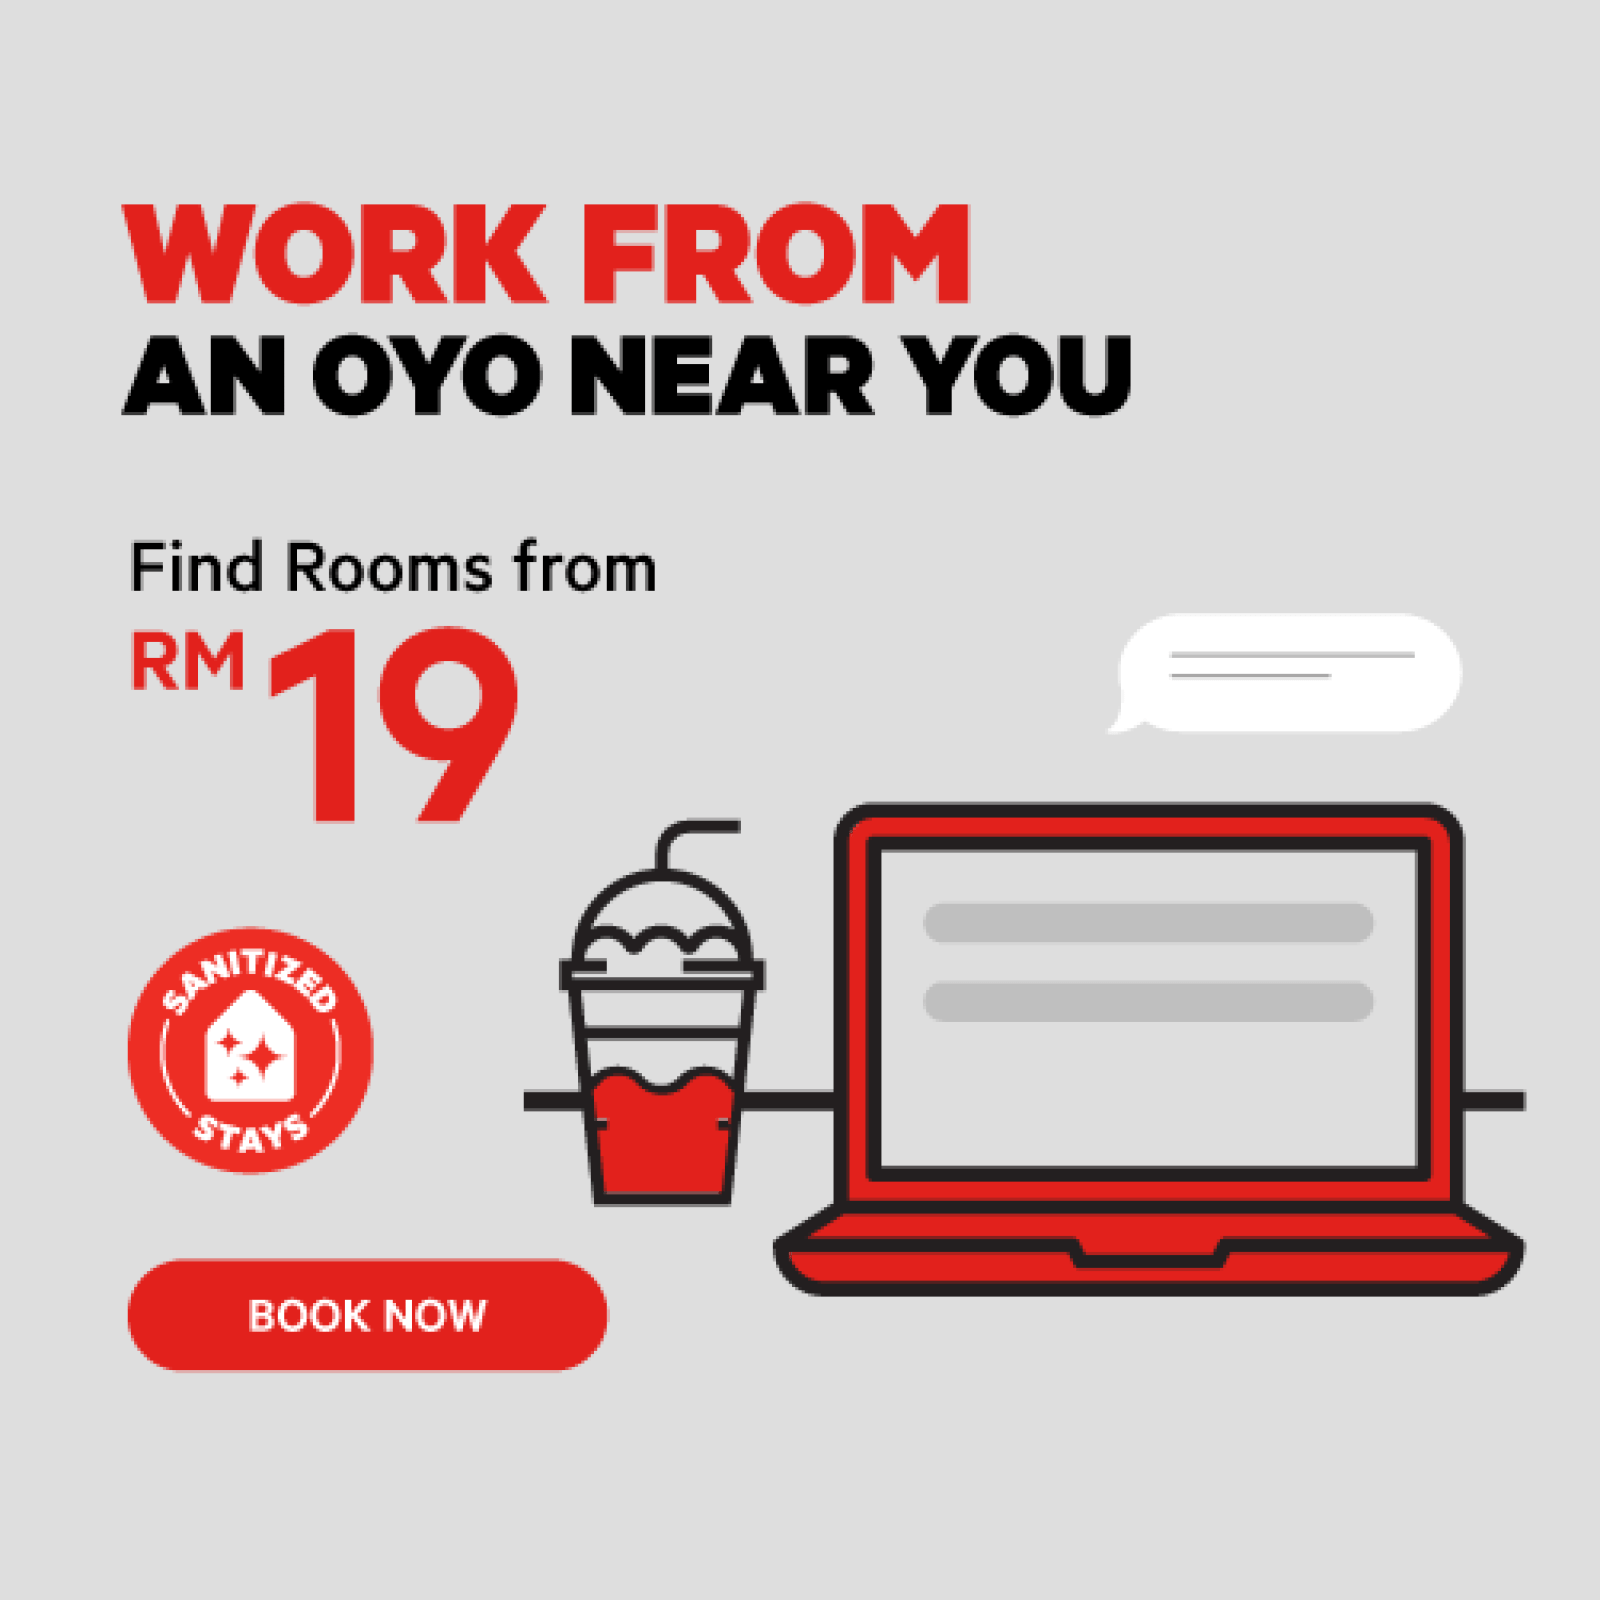 OYO Work From Hotel Poster